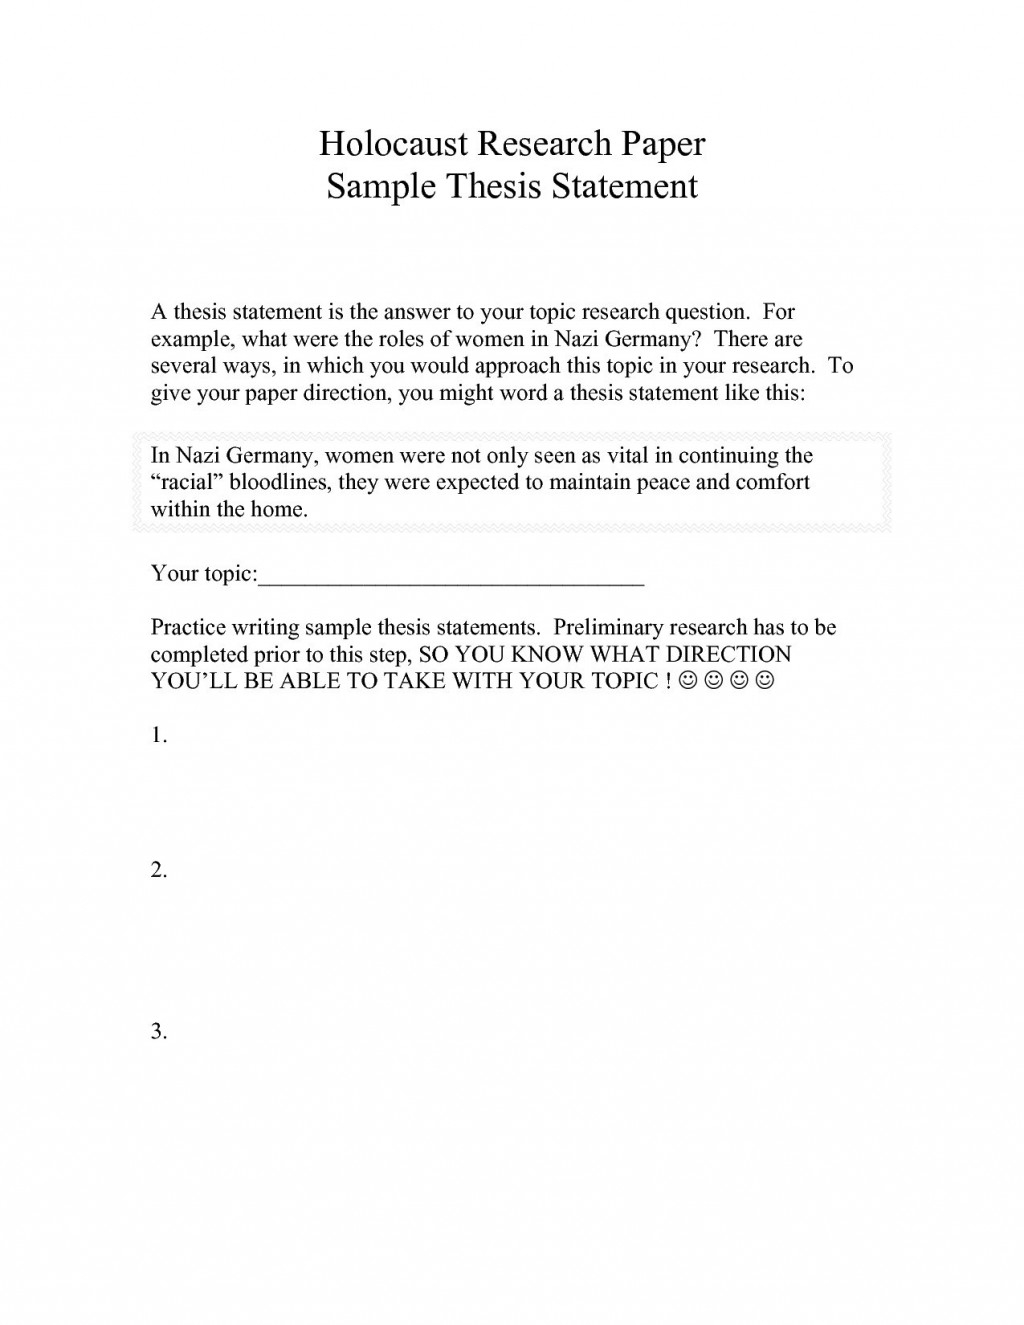 007 Science And Religion Essay Thesis Statement Examples Essays With Pertaining To For Research Papers Paper Good Exceptional Statements Psychology My Large